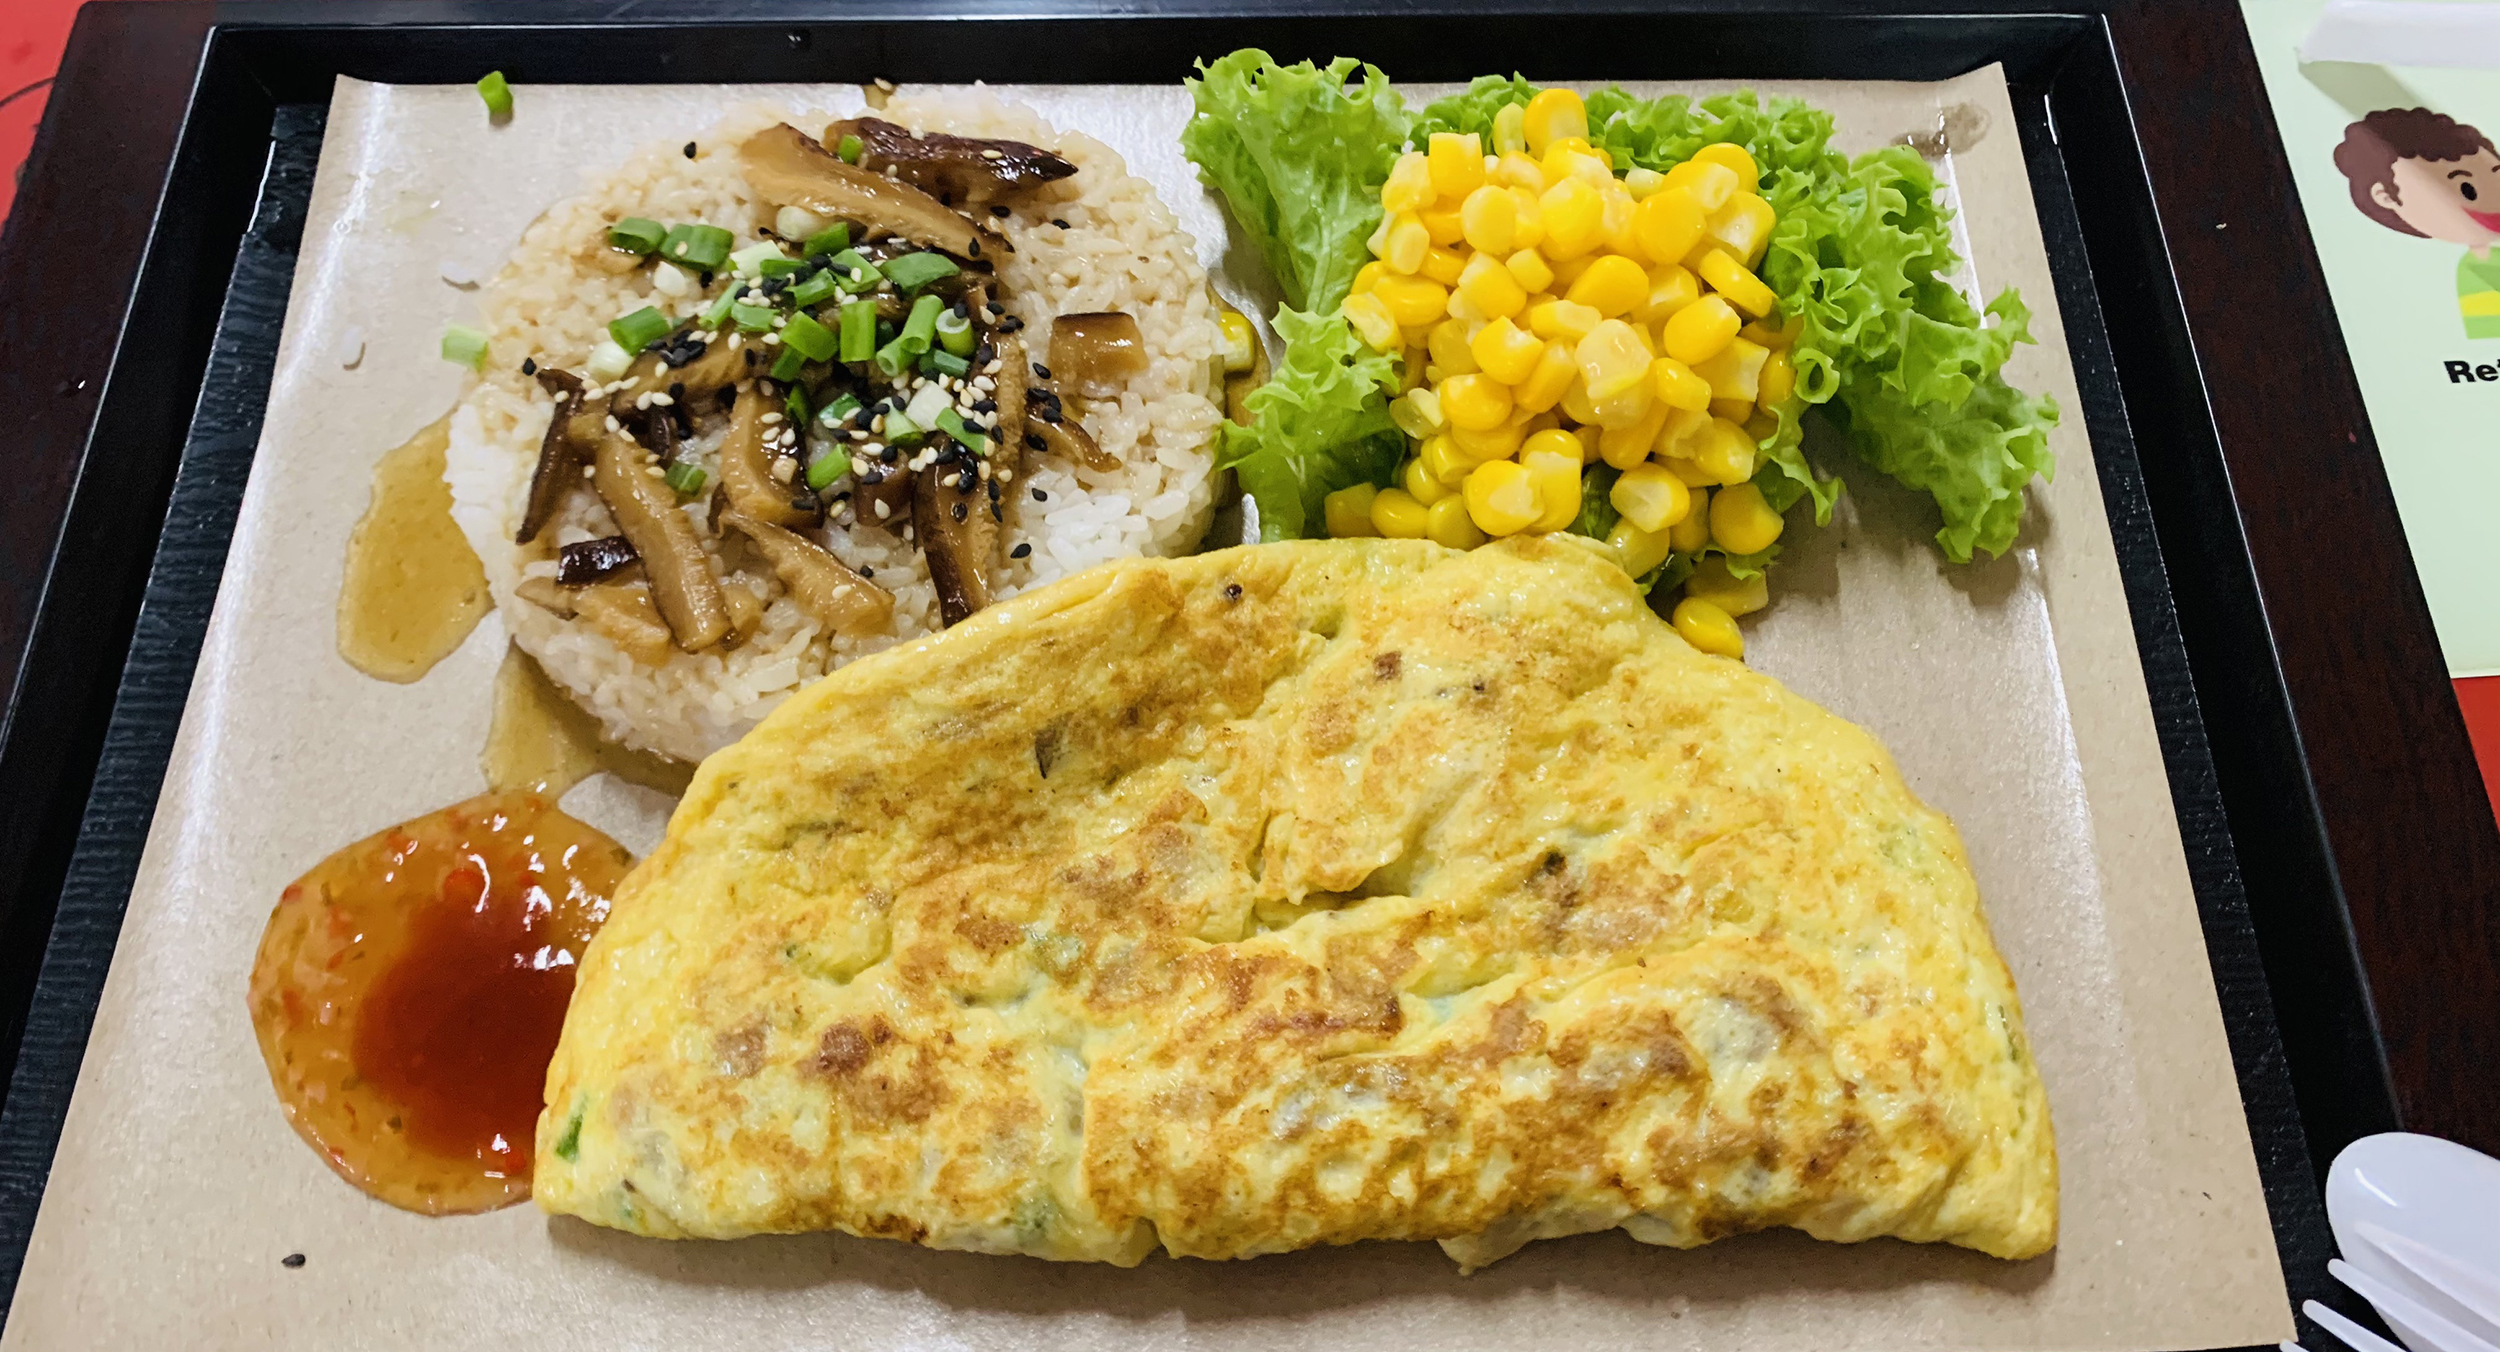 From Zi Char to Omelette Chef, taste Traditional culinary skills in Western Cuisine